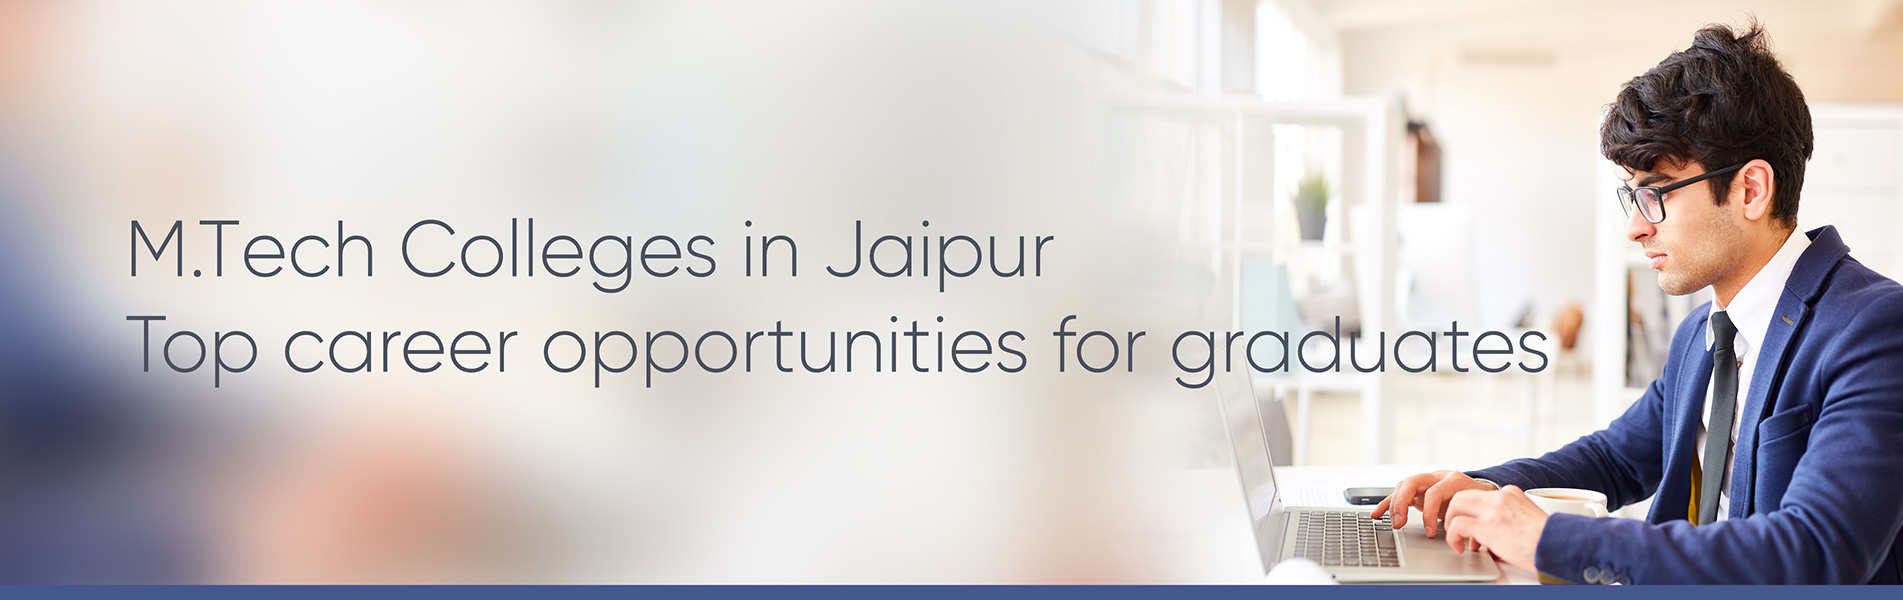 MTech Colleges in Jaipur, career opportunities